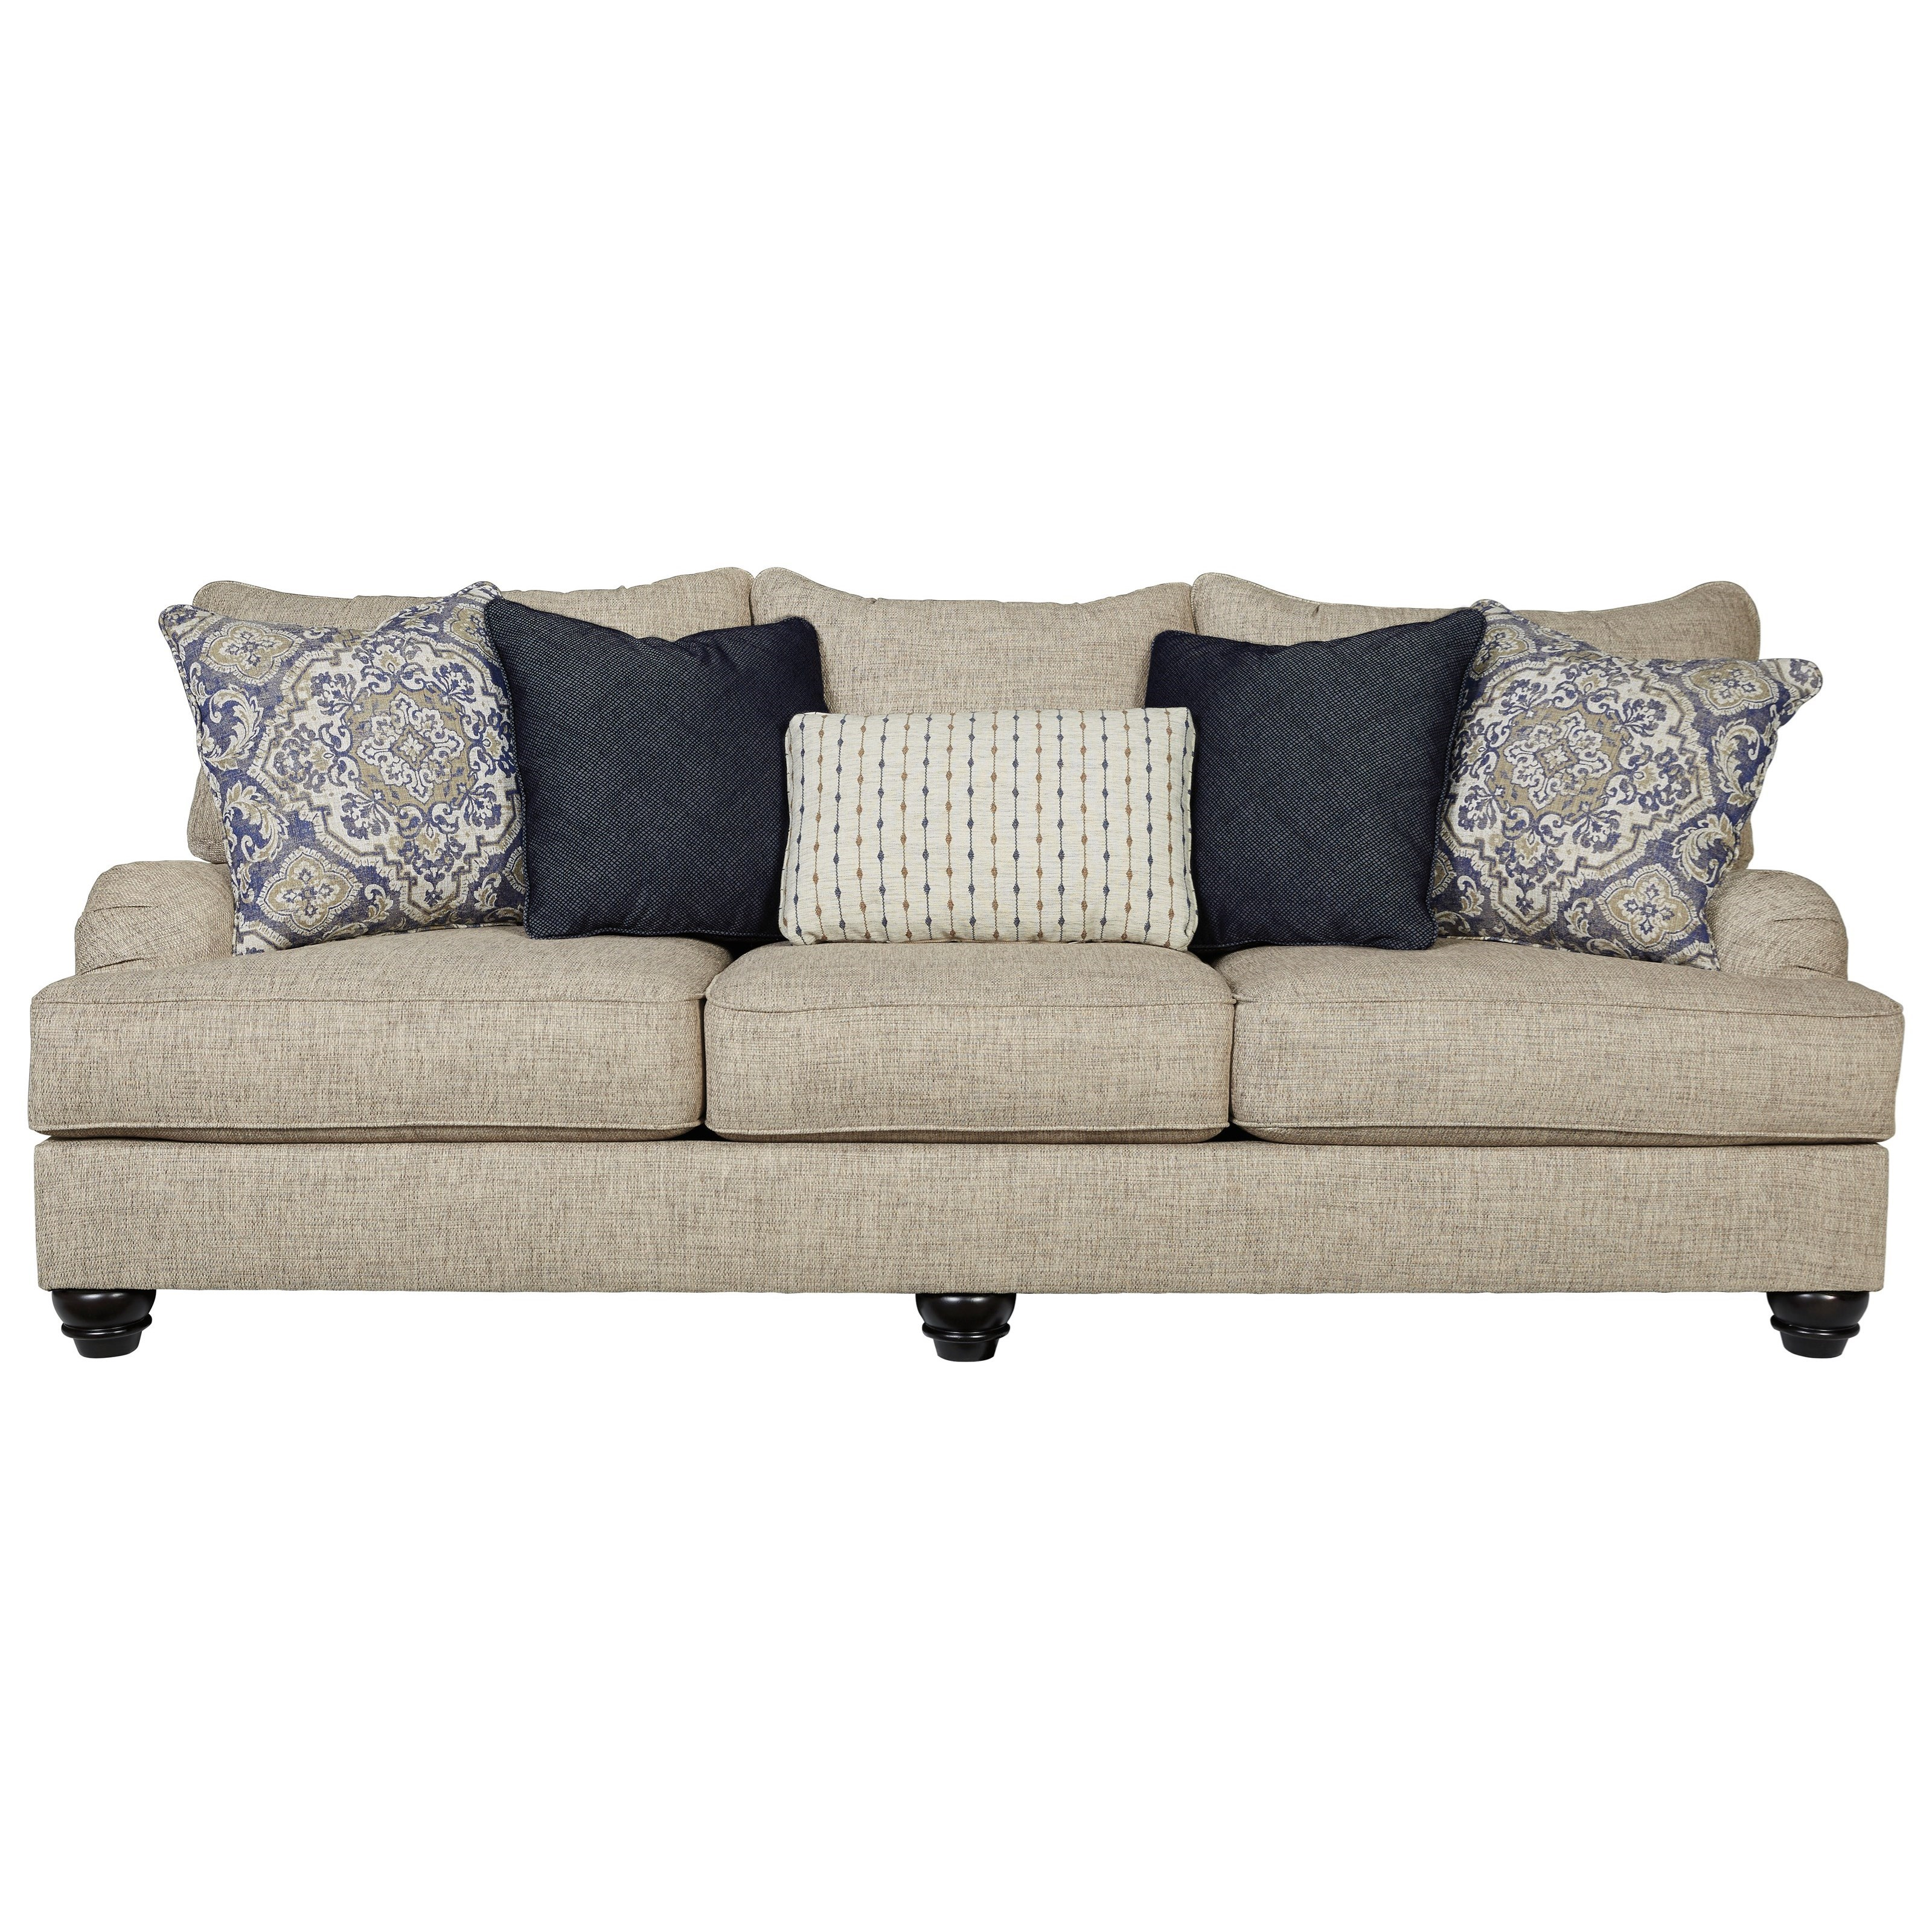 Signature Design By Ashley Reardon 5600138 Sofa With